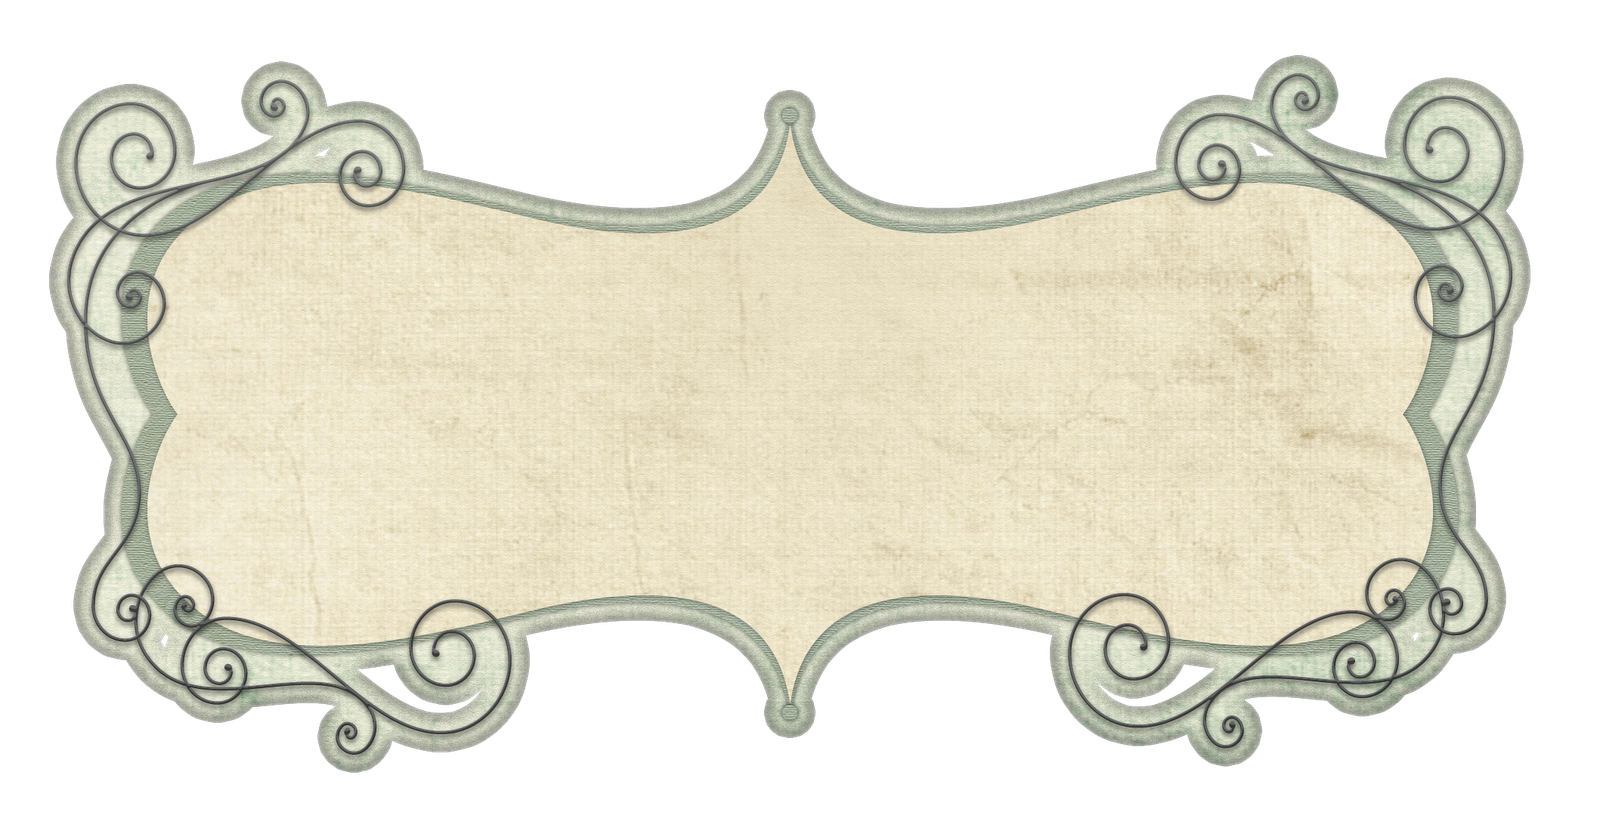 label frames png - photo #2